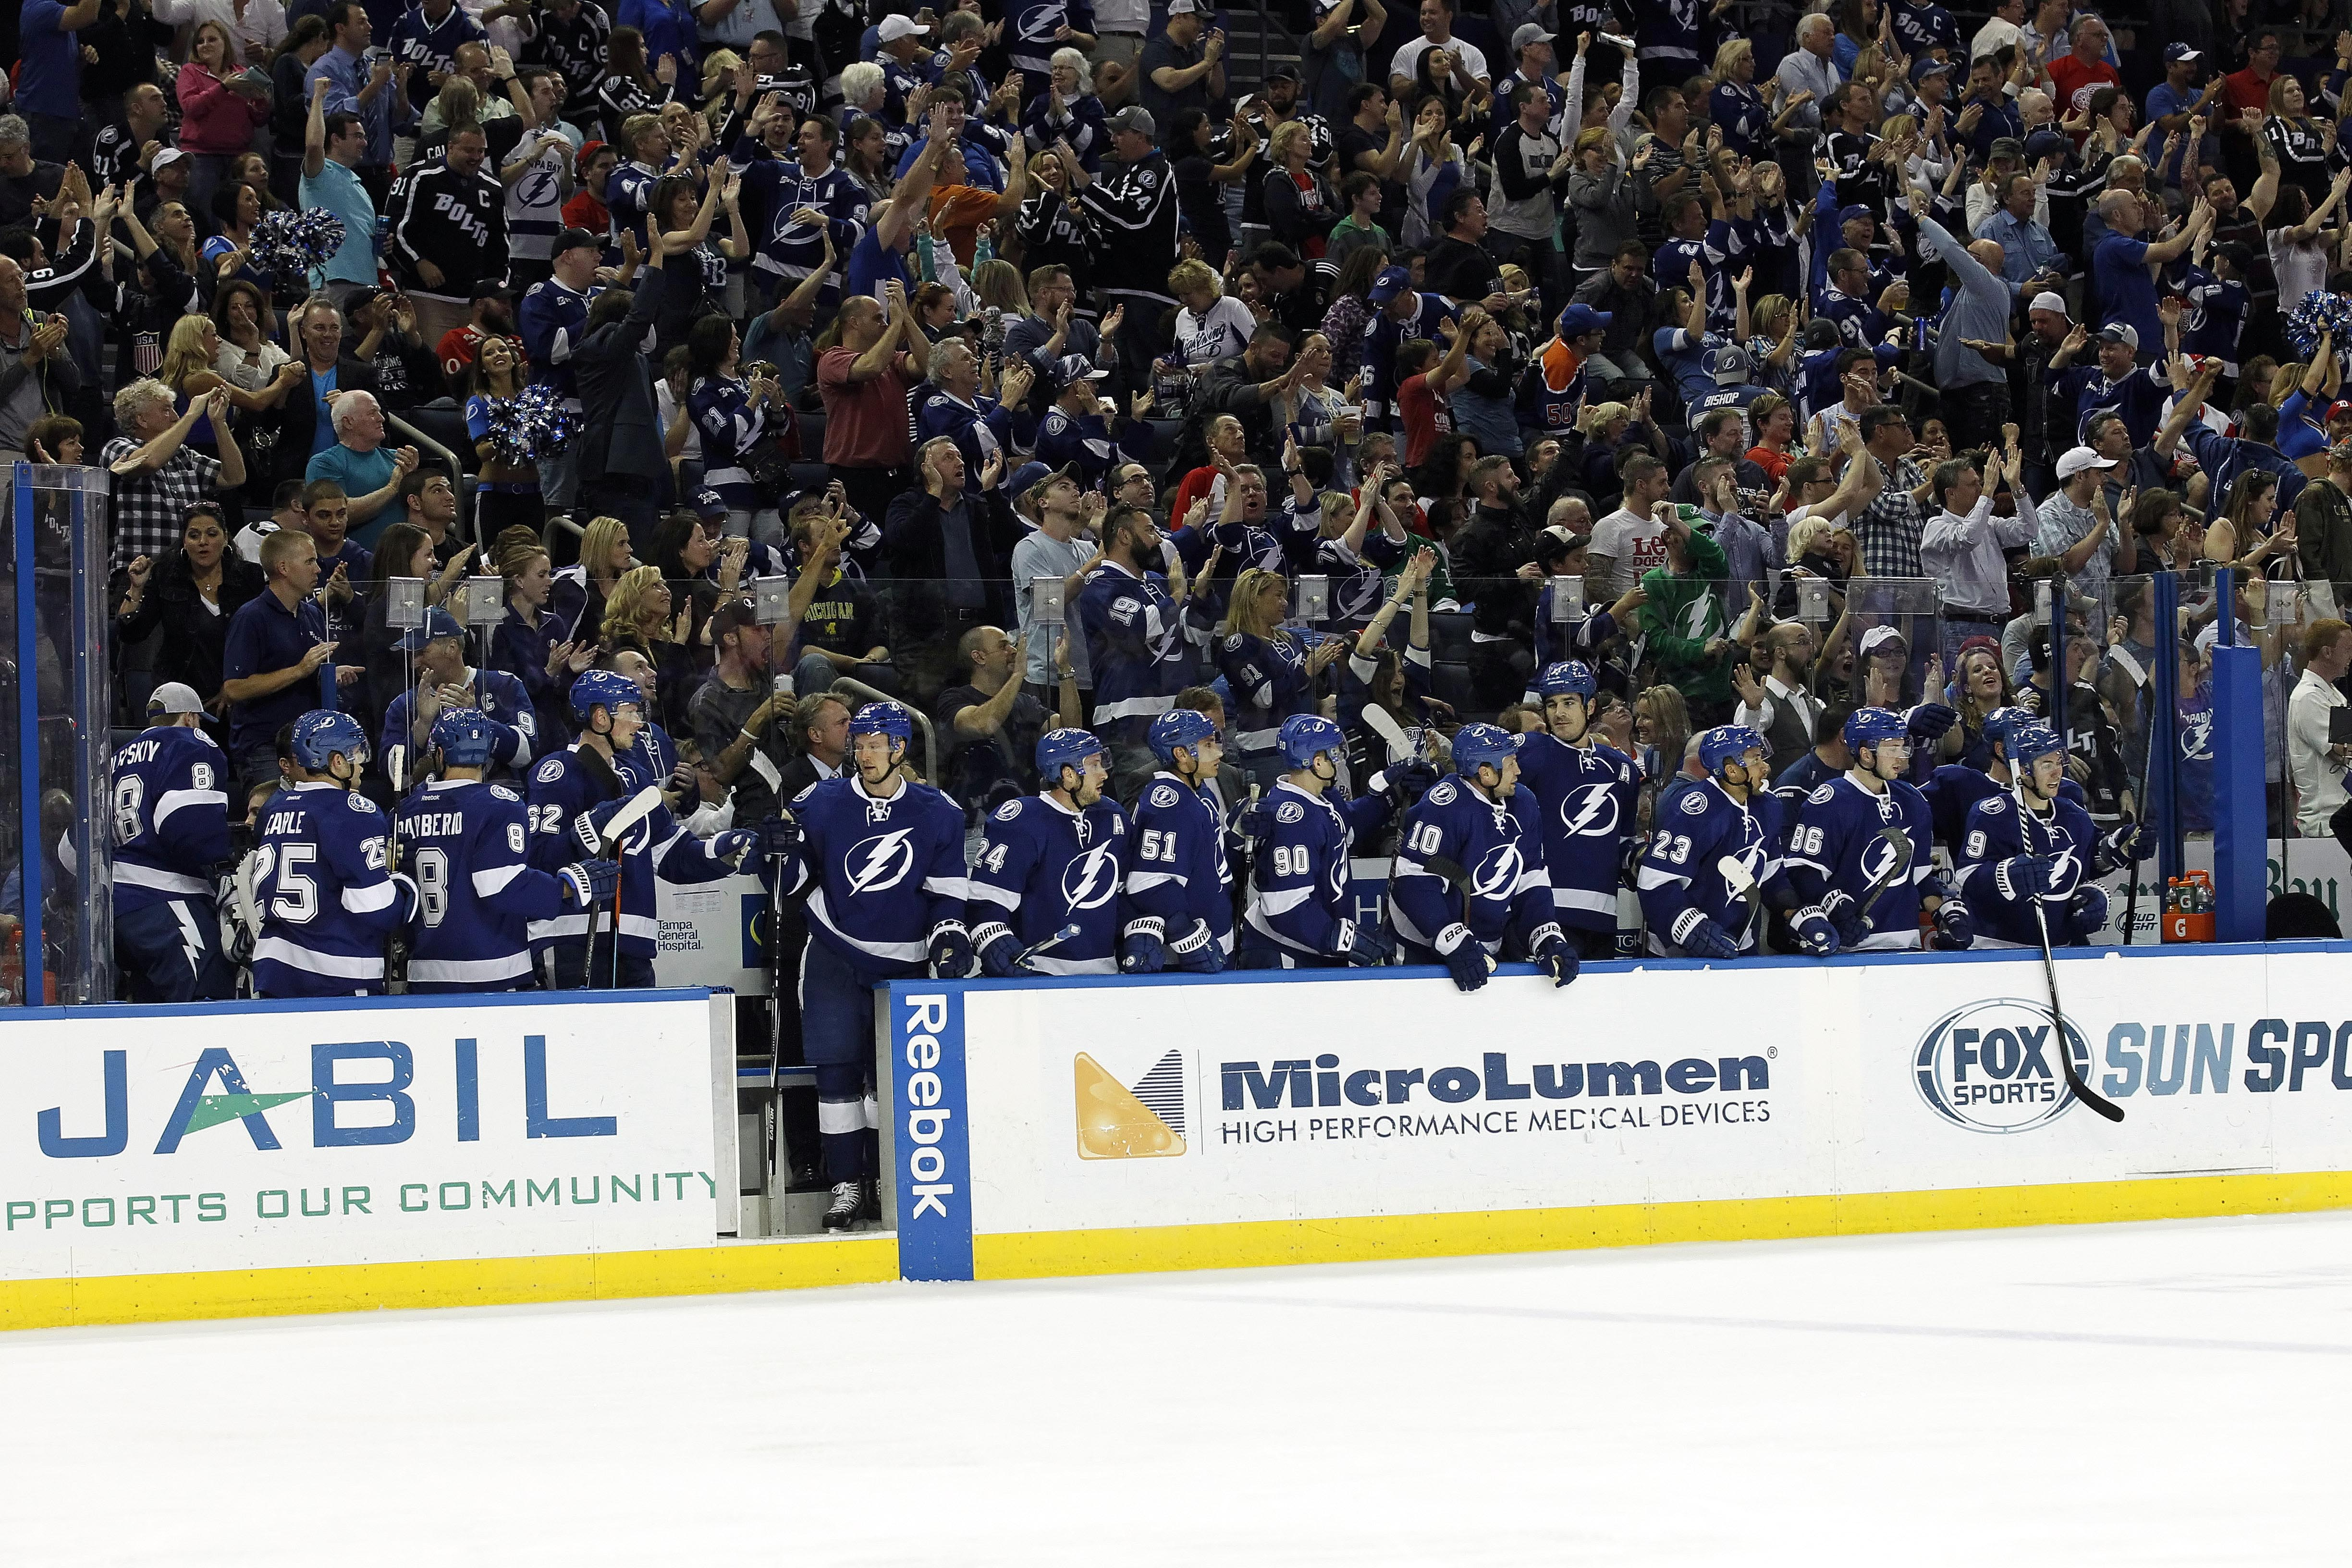 Rejoice, Lightning fans, and embrace your Bandwagon brethren. Just keep those Frontrunners at arm's length.